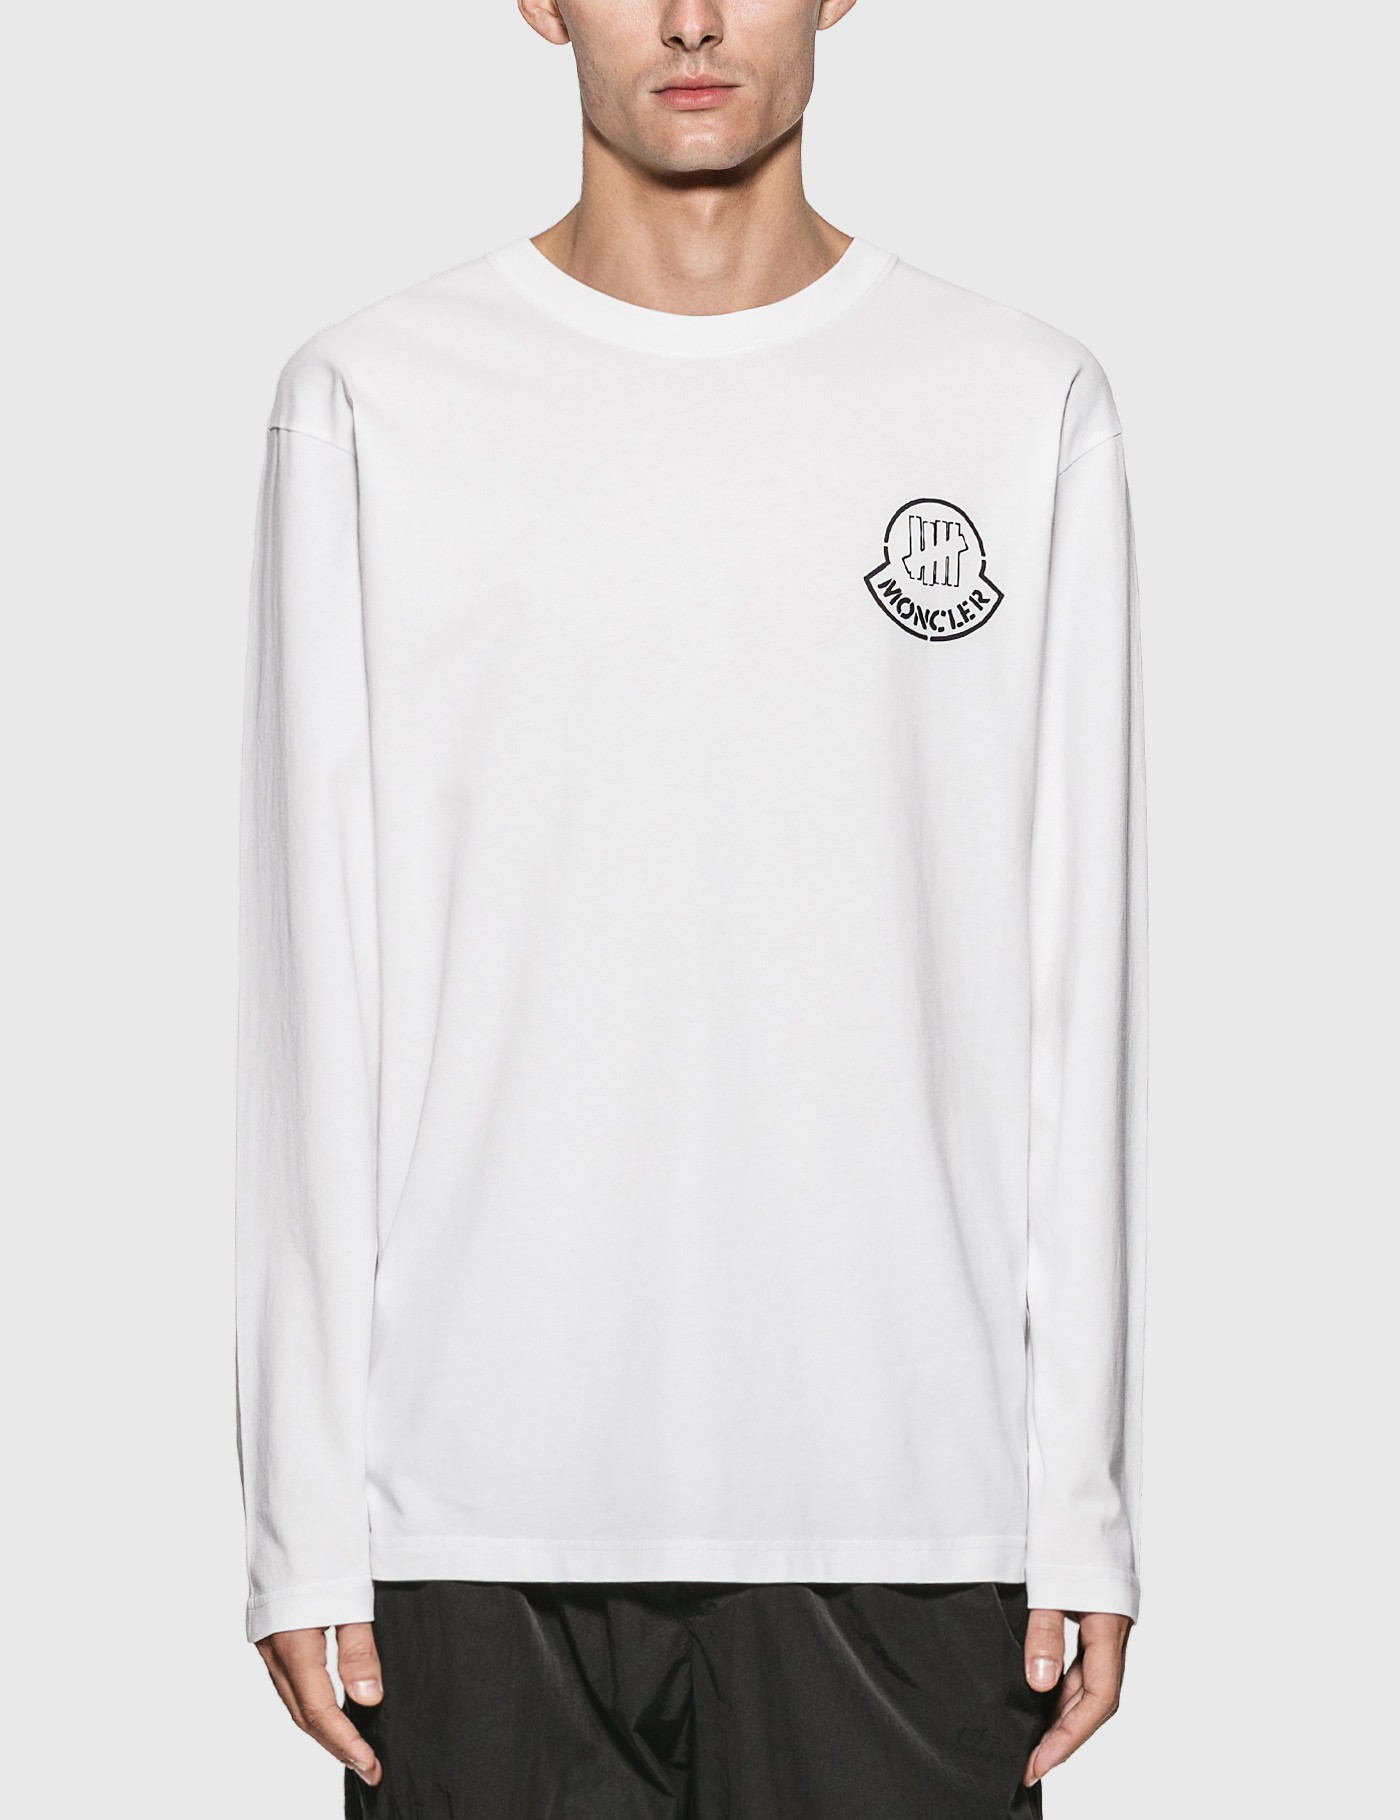 Moncler Genius Tops 1952 X UNDEFEATED LOGO LONG SLEEVE T-SHIRT